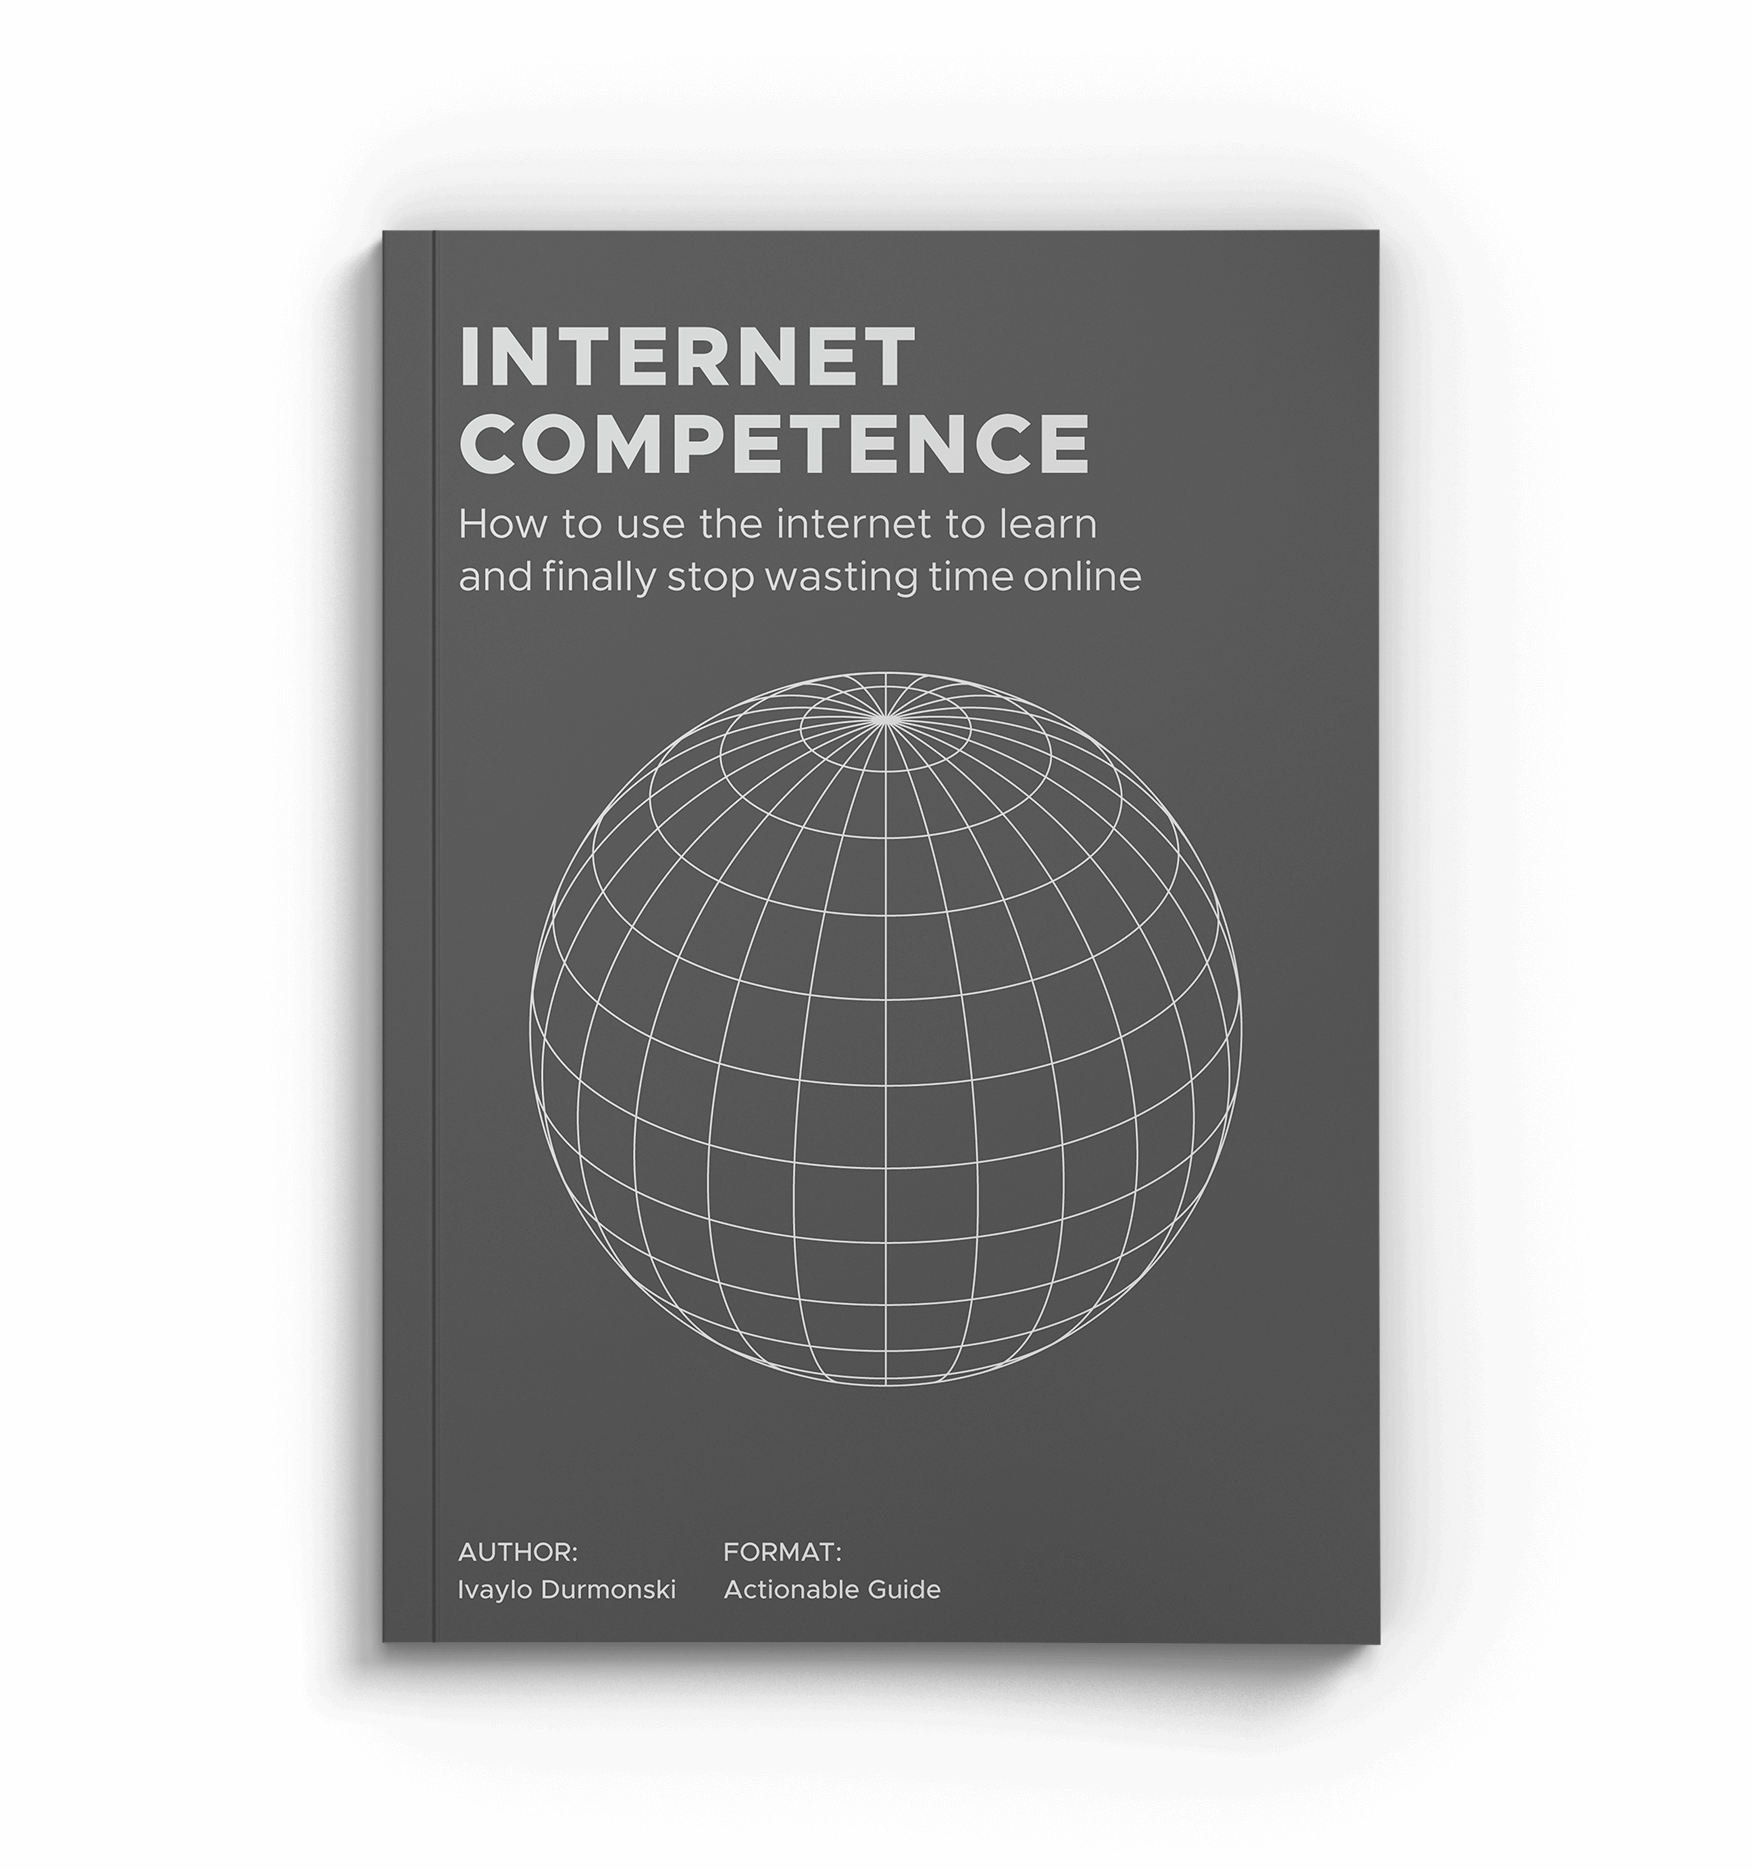 Internet Competence Guide